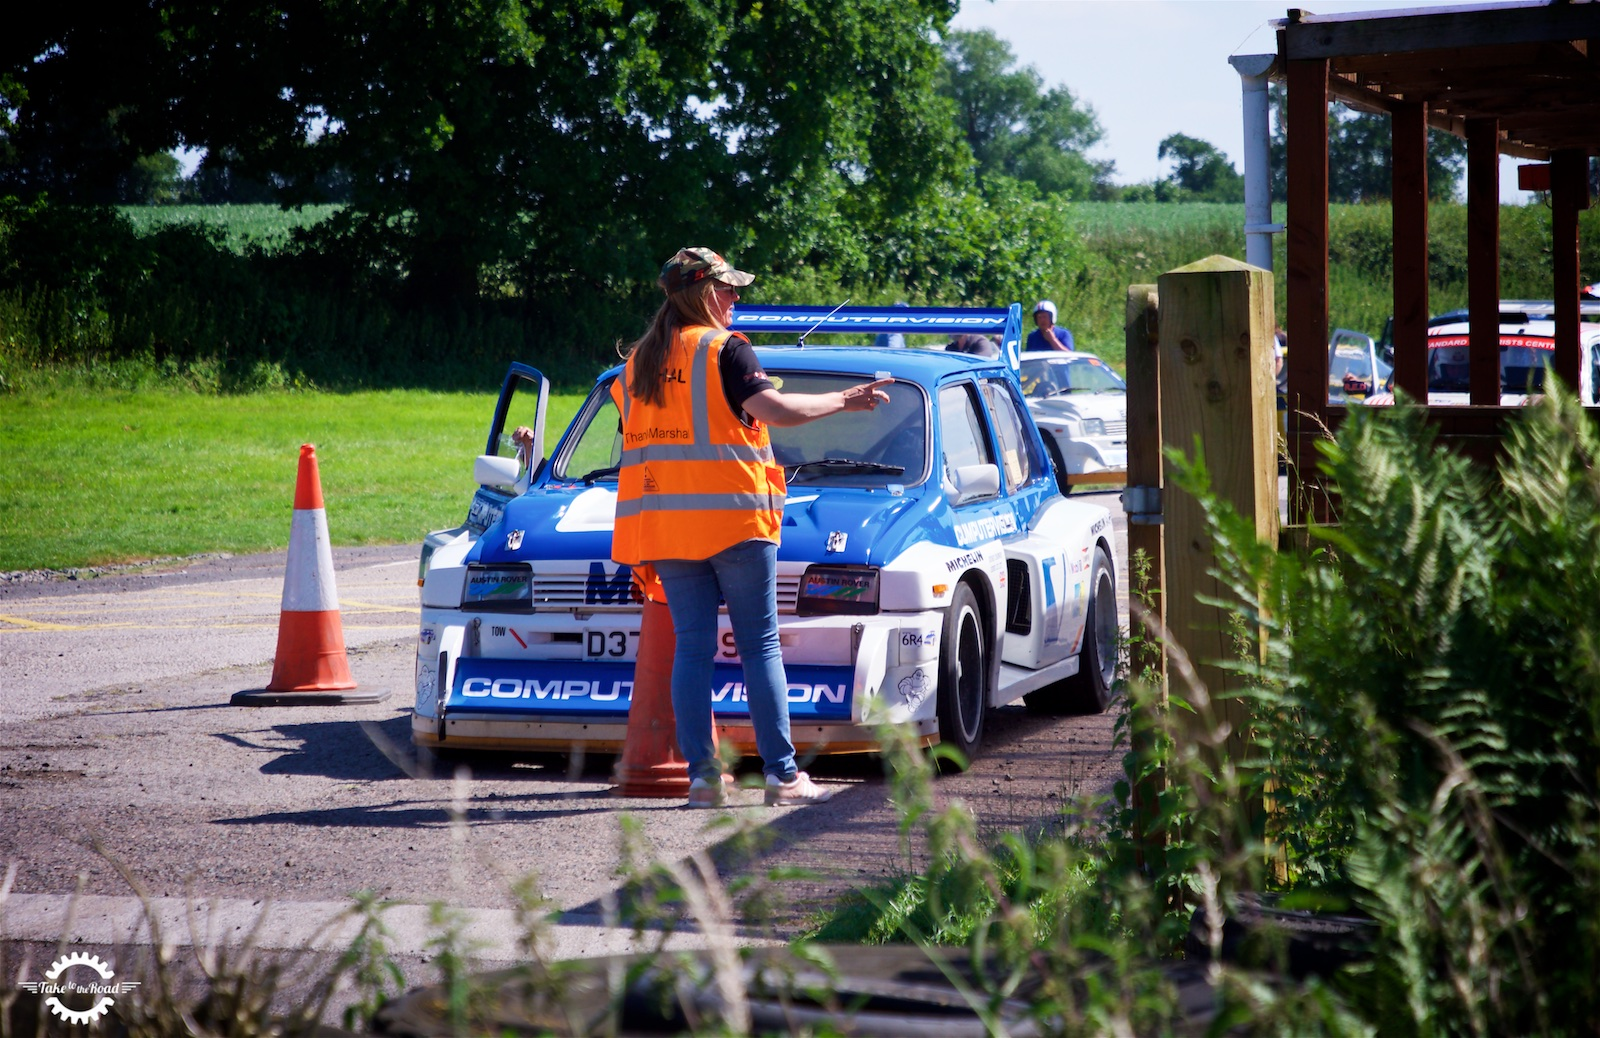 Take to the Road 2018 Highlights of the 6R4.net Track Day at Curborough Sprint Course